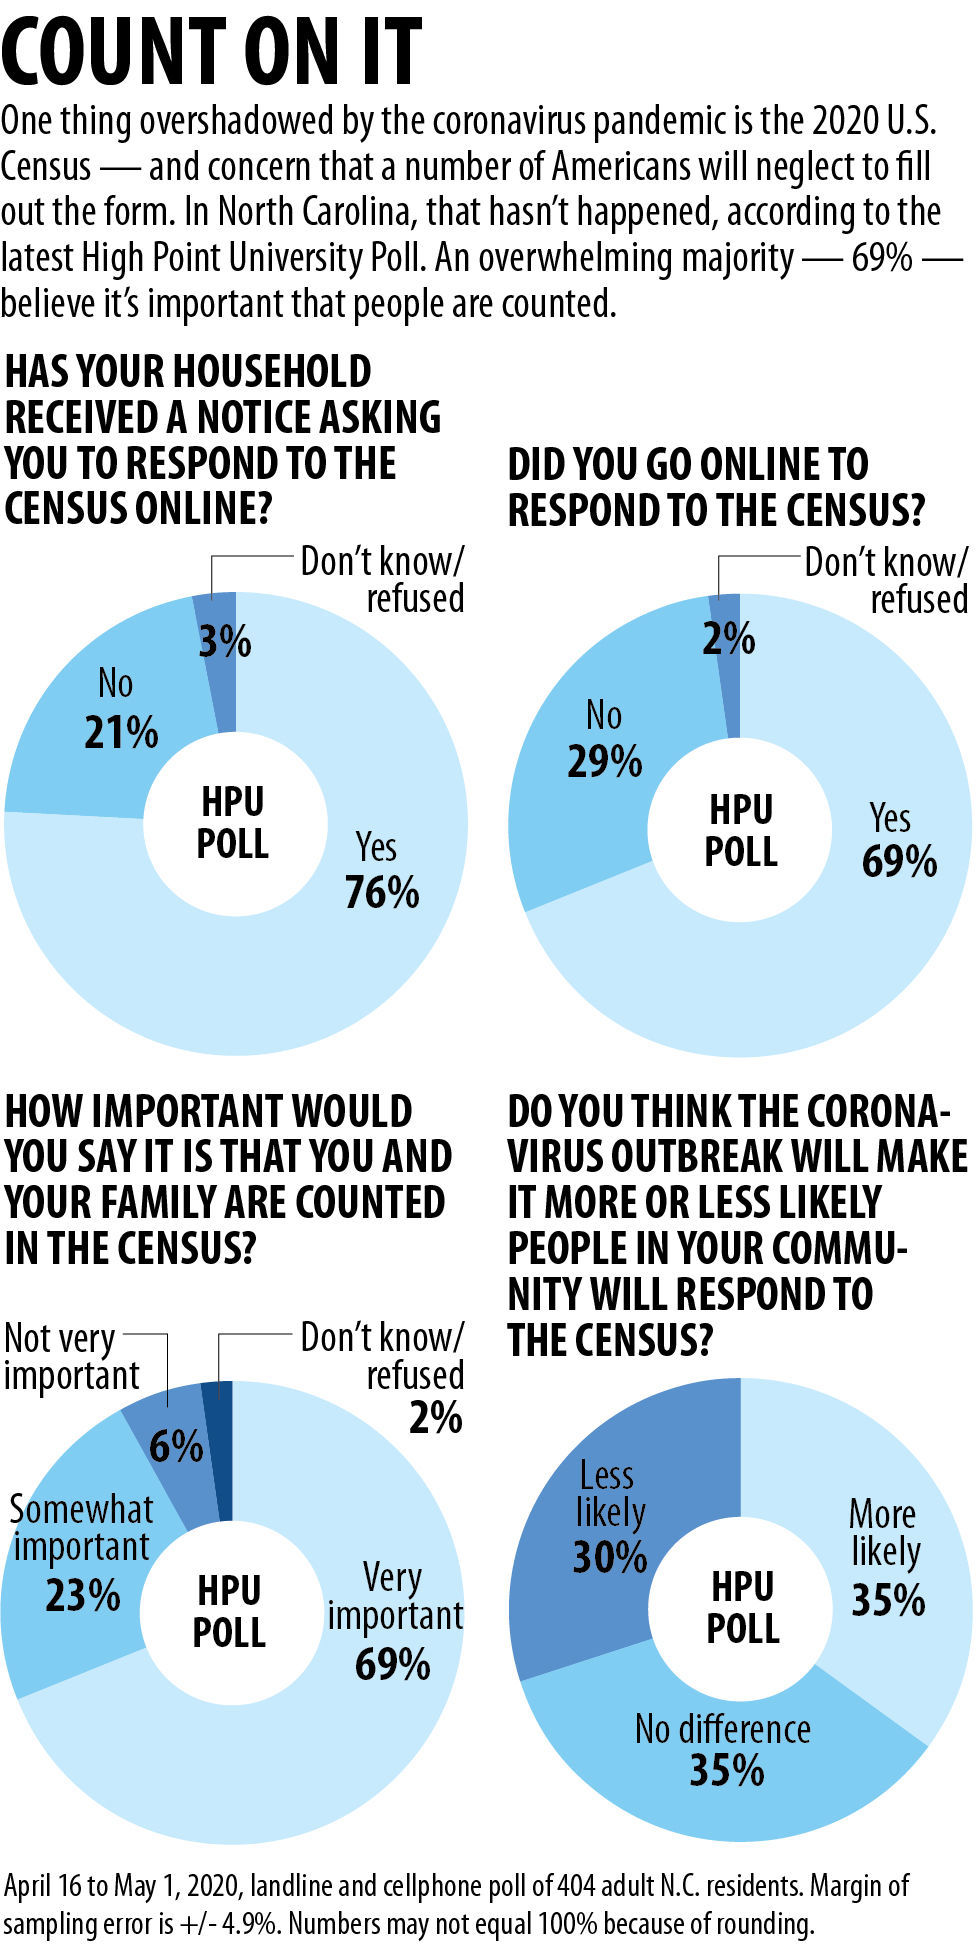 HPU census poll